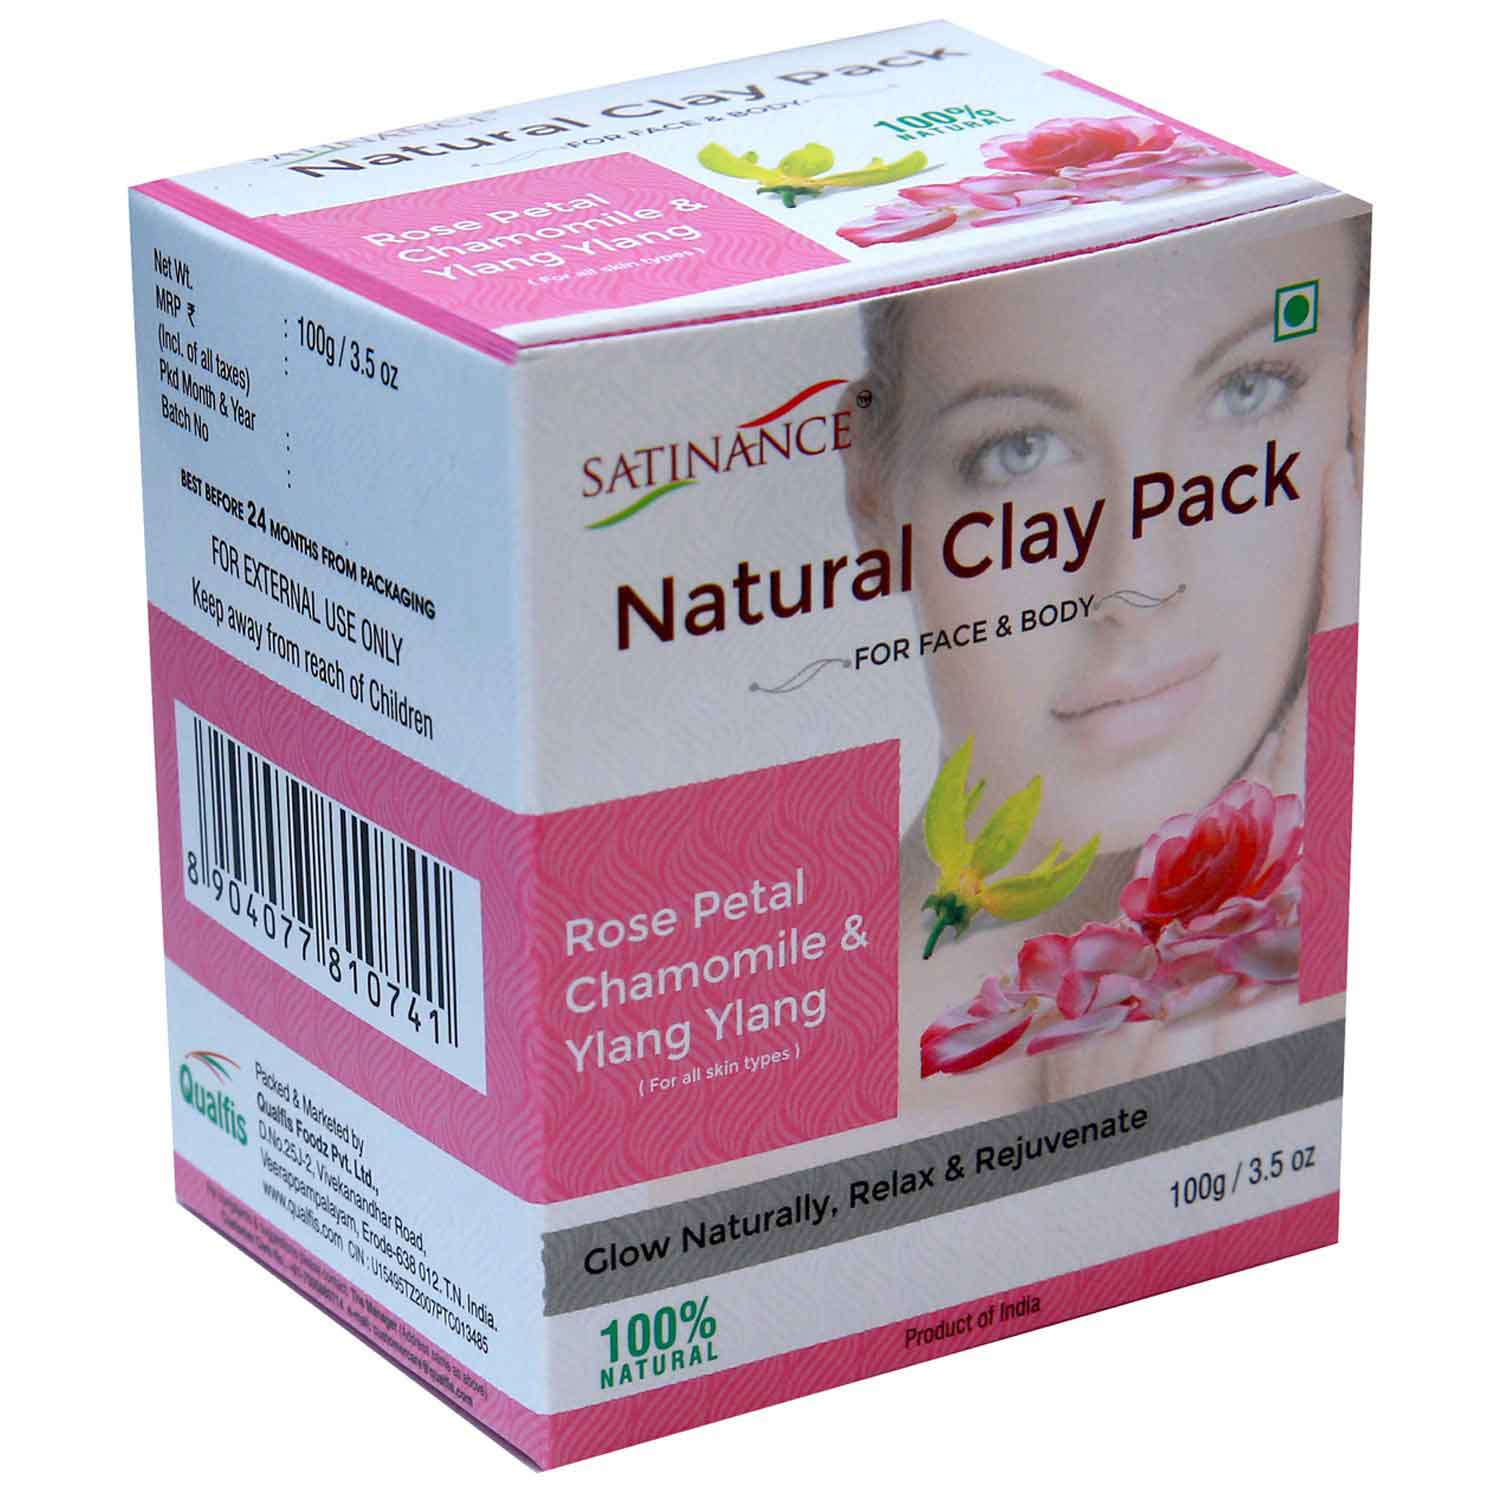 Natural Clay Pack Rose Petal, Chamomile & Ylang Ylang 100g (Glow Naturally, Relax & Rejuvenate)